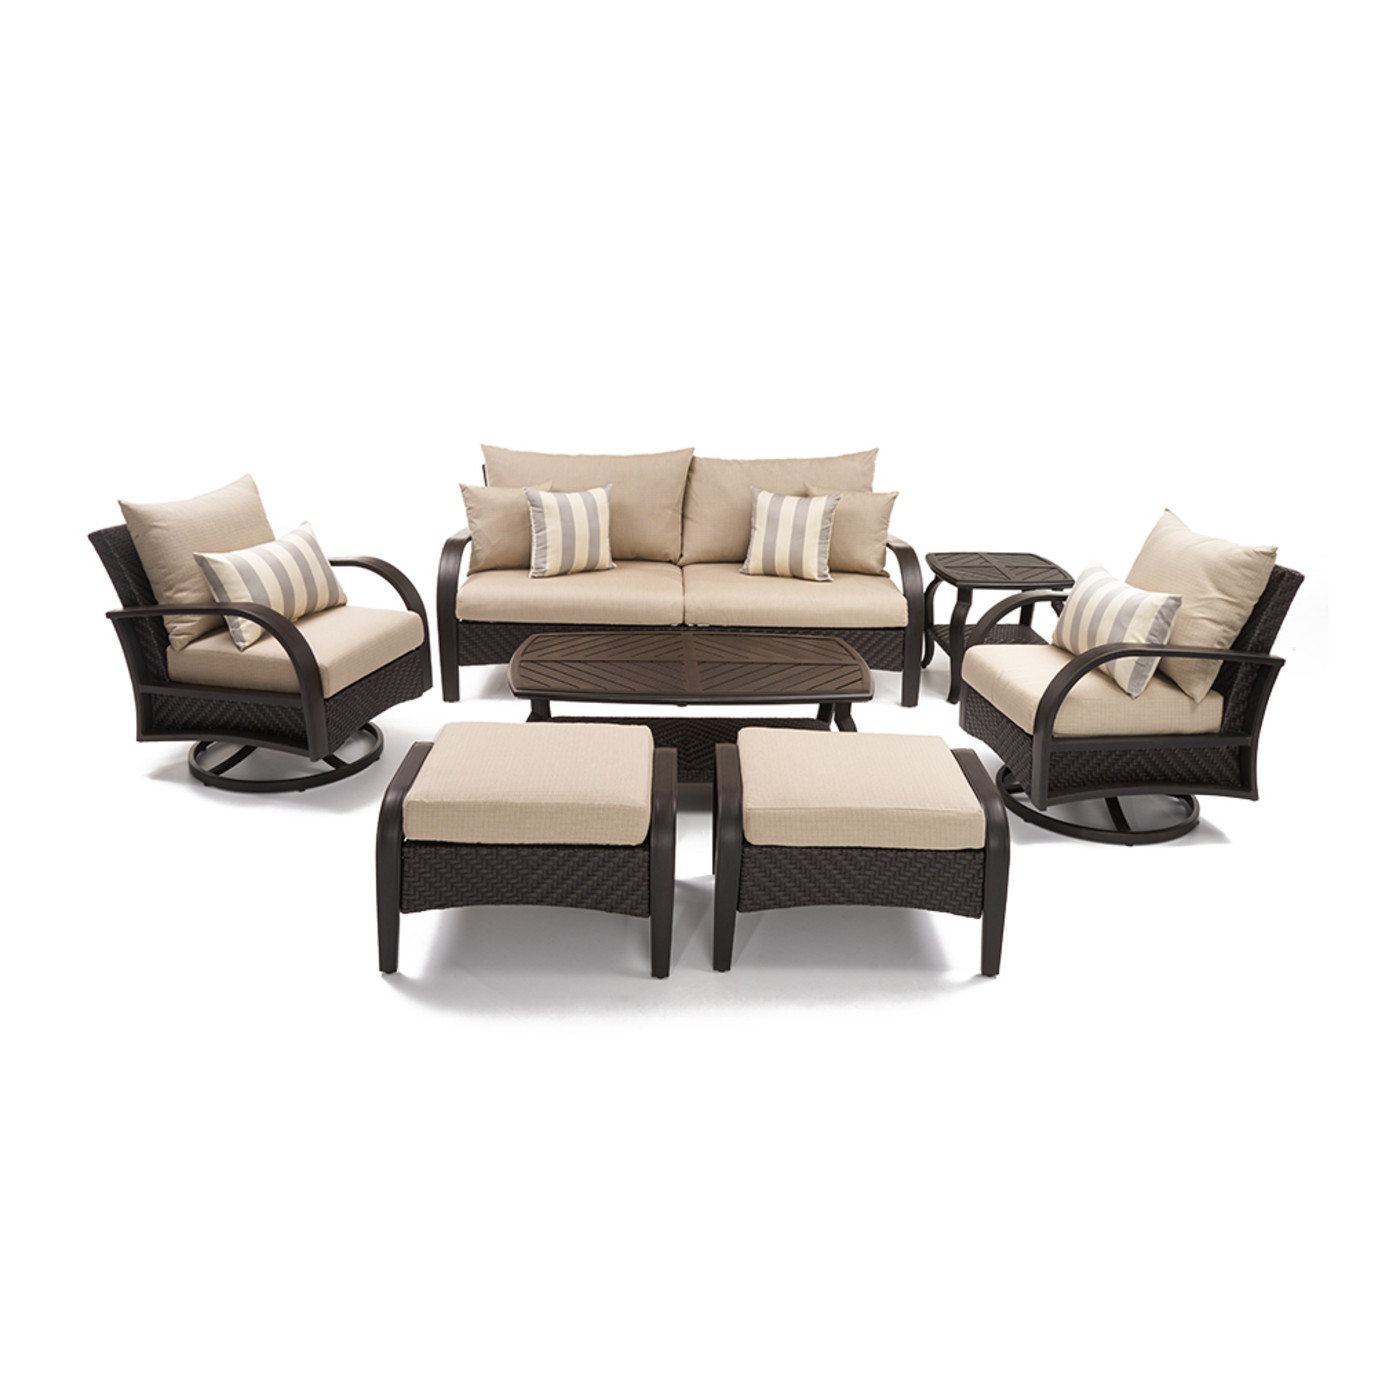 Barcelo™ 7pc Motion Club Deep Seating Set - Slate Grey